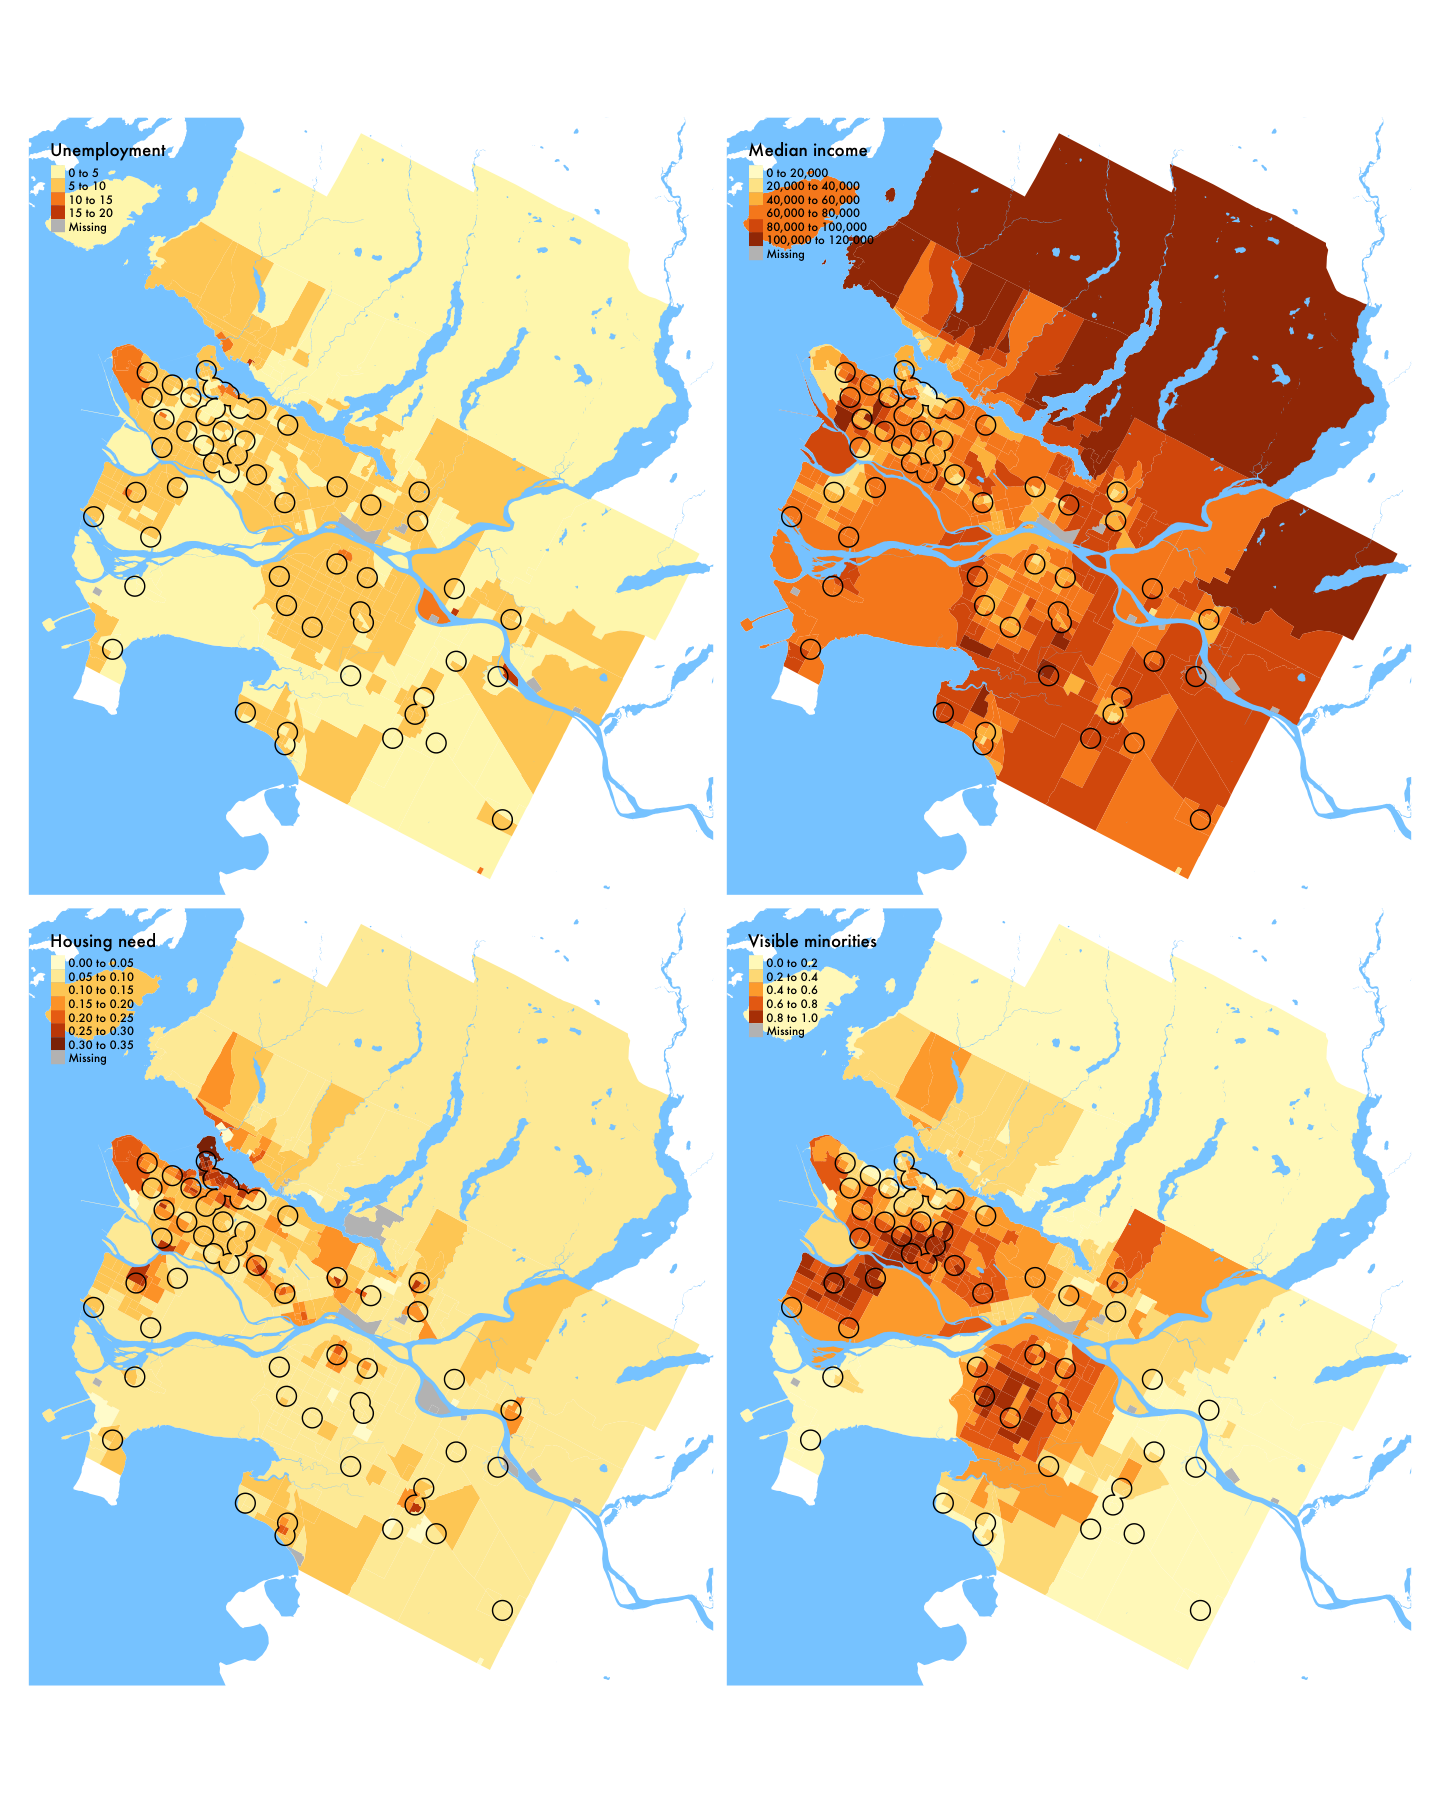 Demographic variables in Vancouver (region), 2016